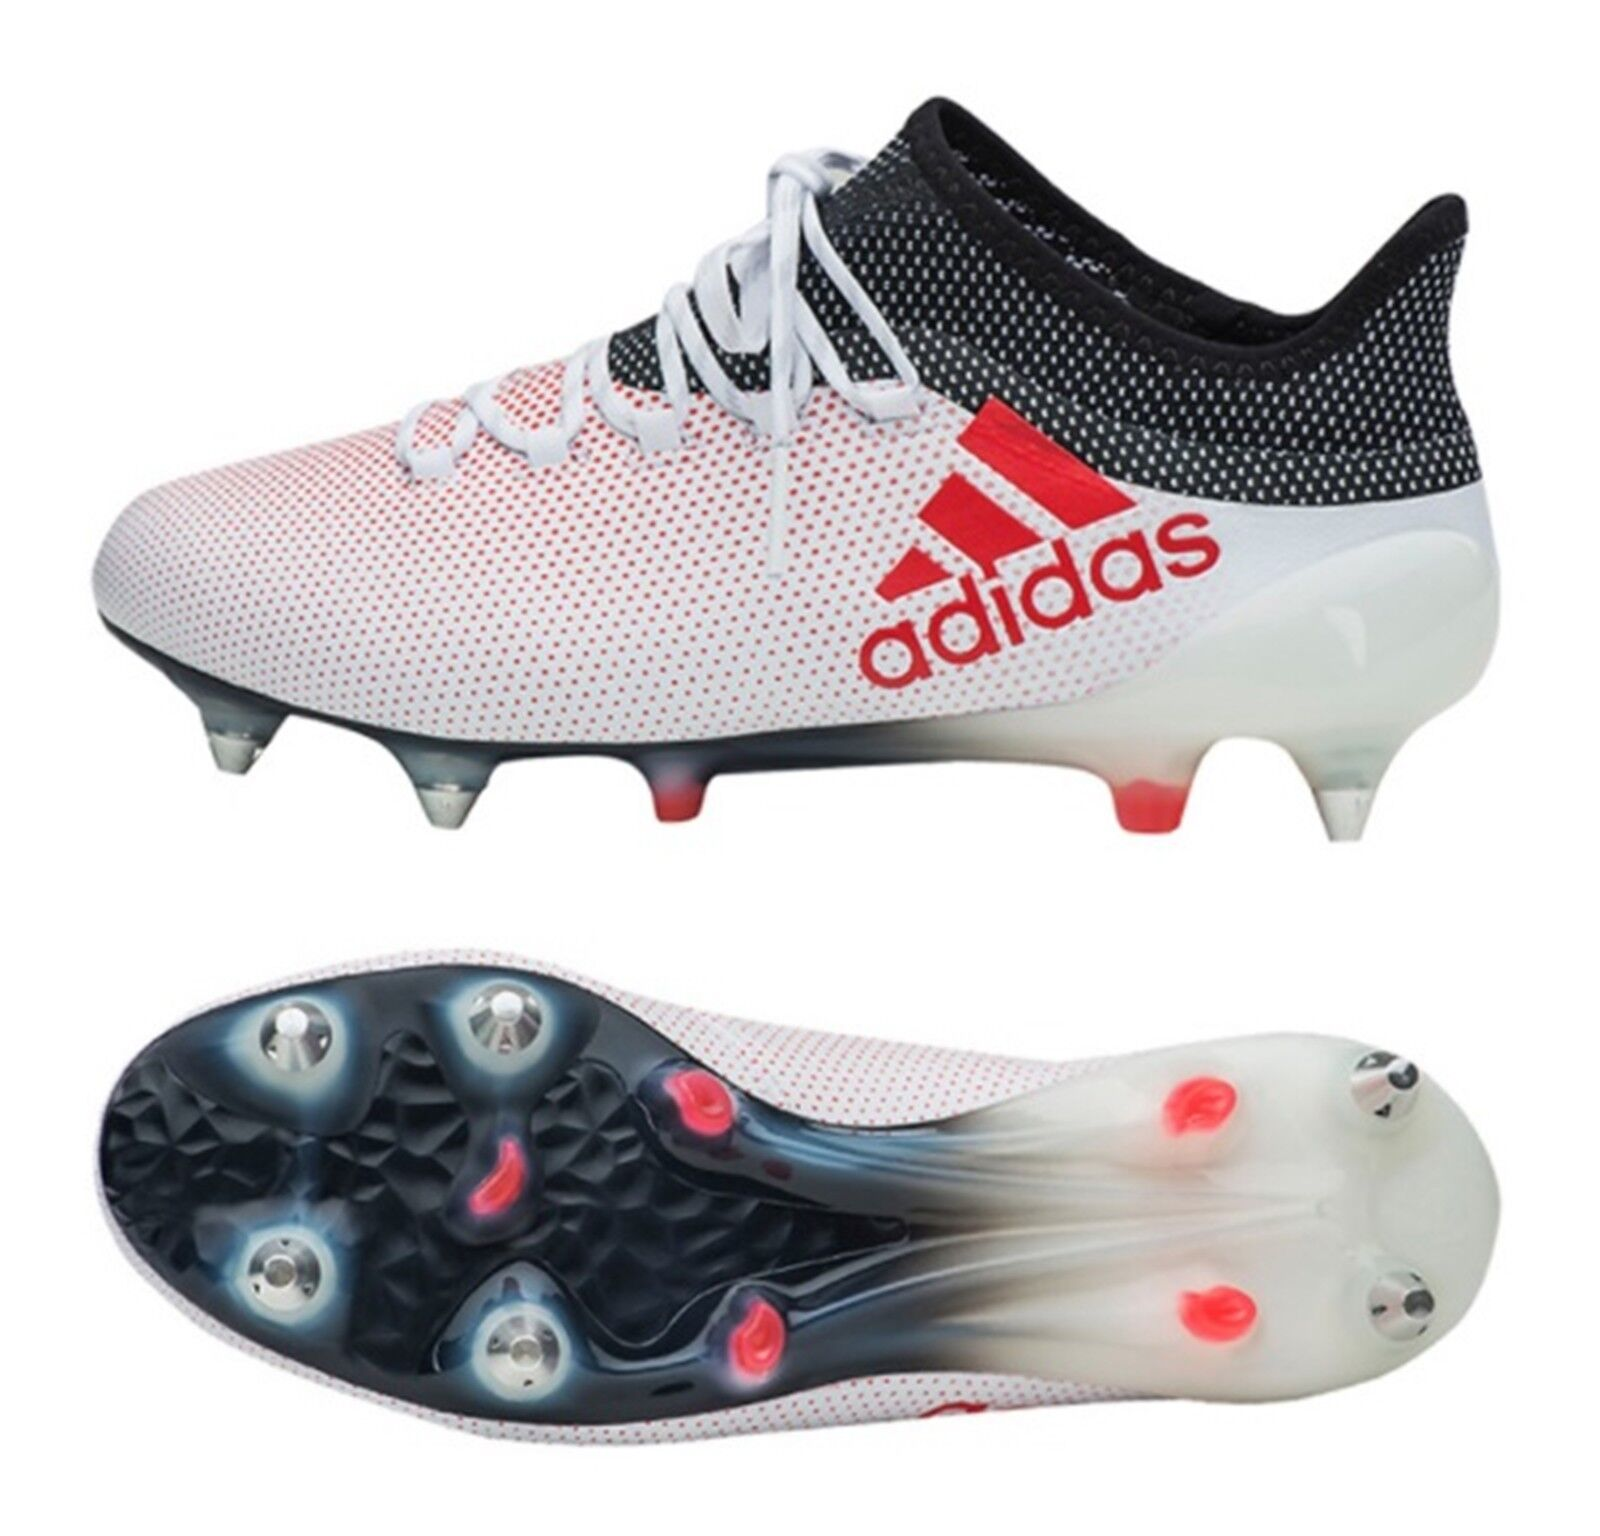 Adidas Men X 17.1 SG Cleats Soccer White Red Football Futsal shoes Spike CP9171